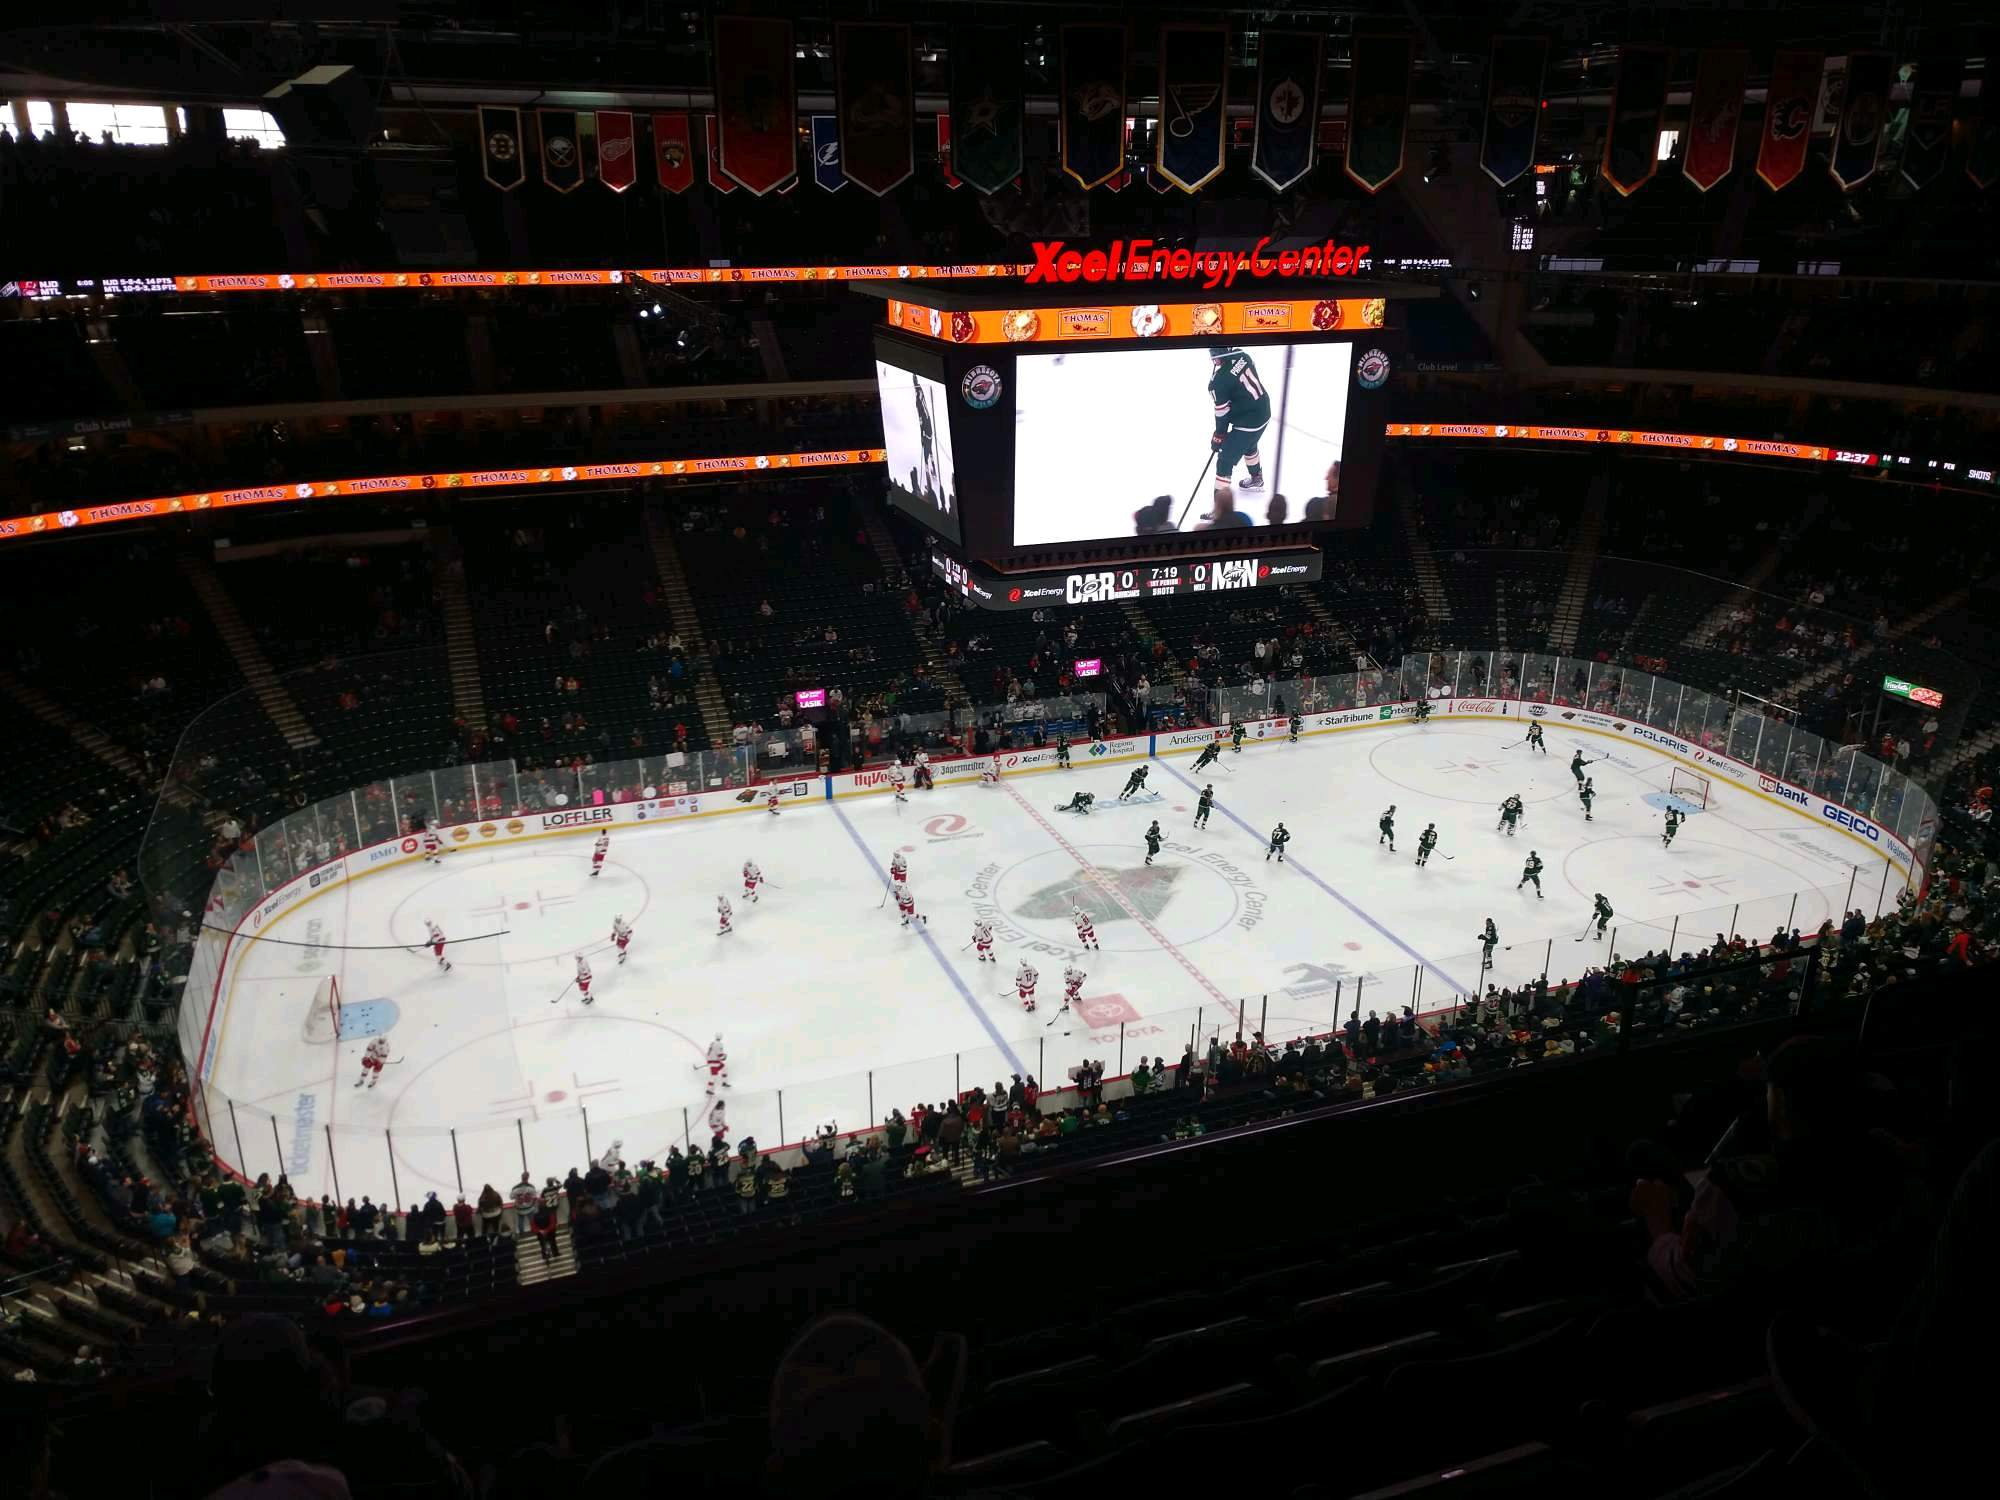 Xcel Energy Center Section 209 Row 7 Seat 12